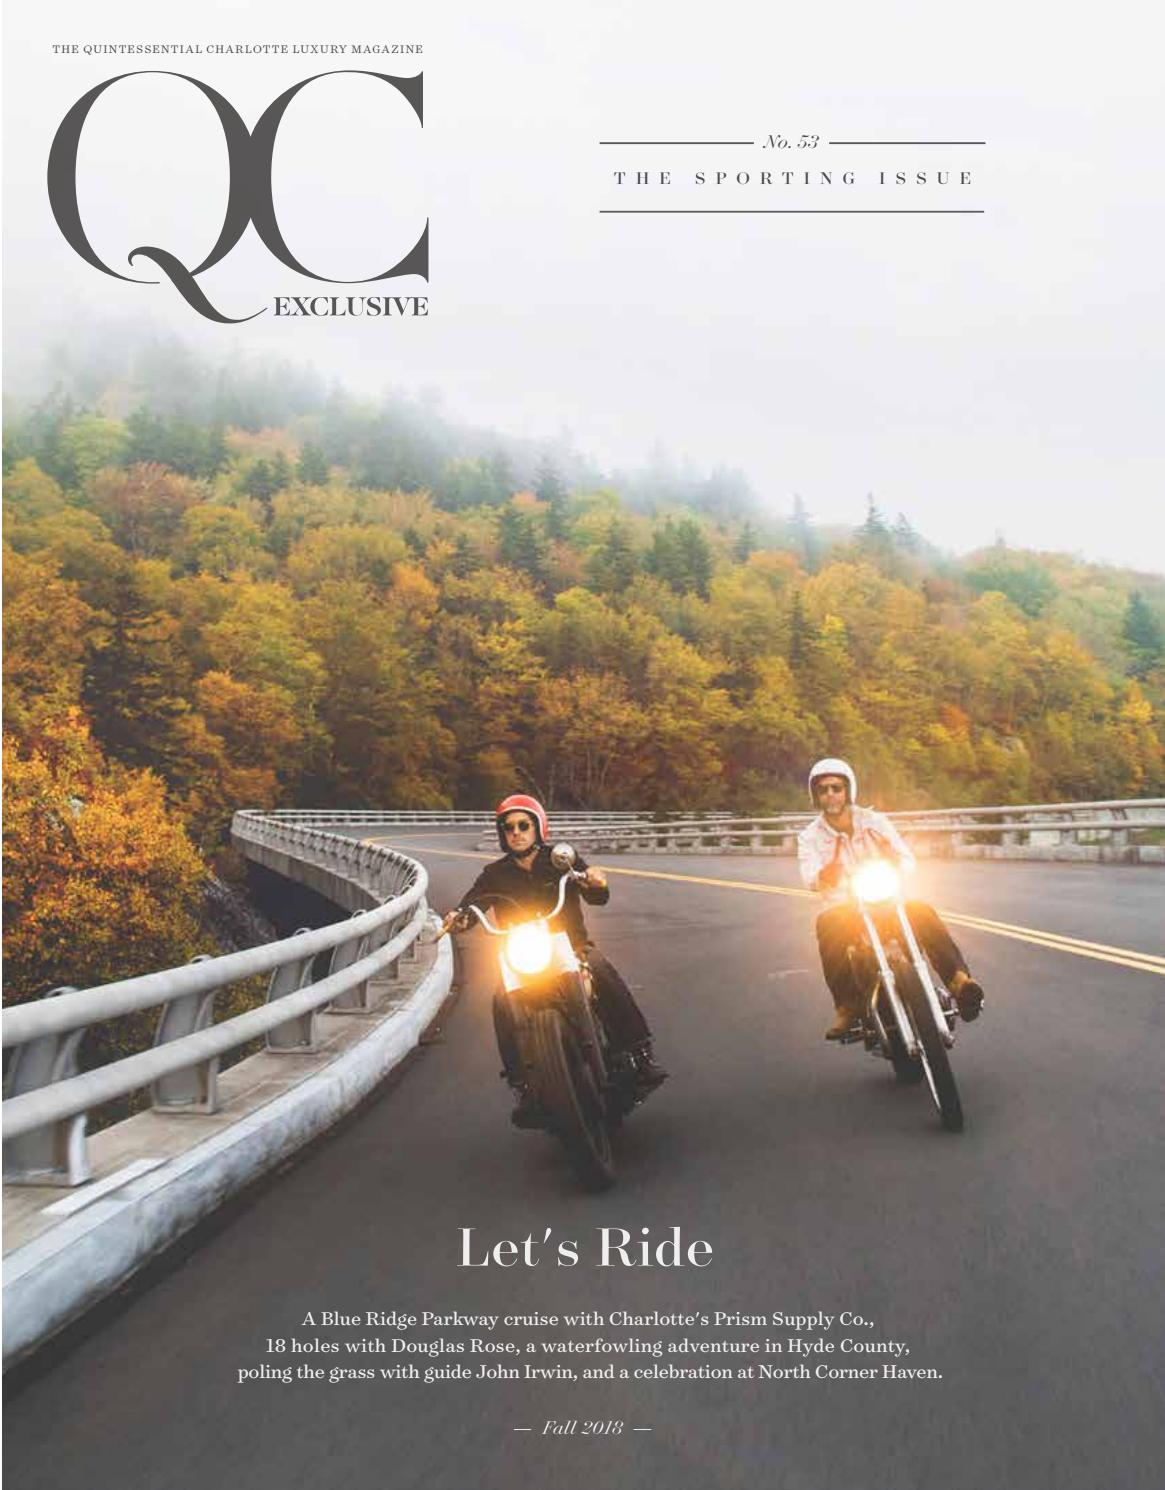 Qc Exclusive No 53 2018 Issue 8 The Sporting Issue By Qc Exclusive Magazine Issuu